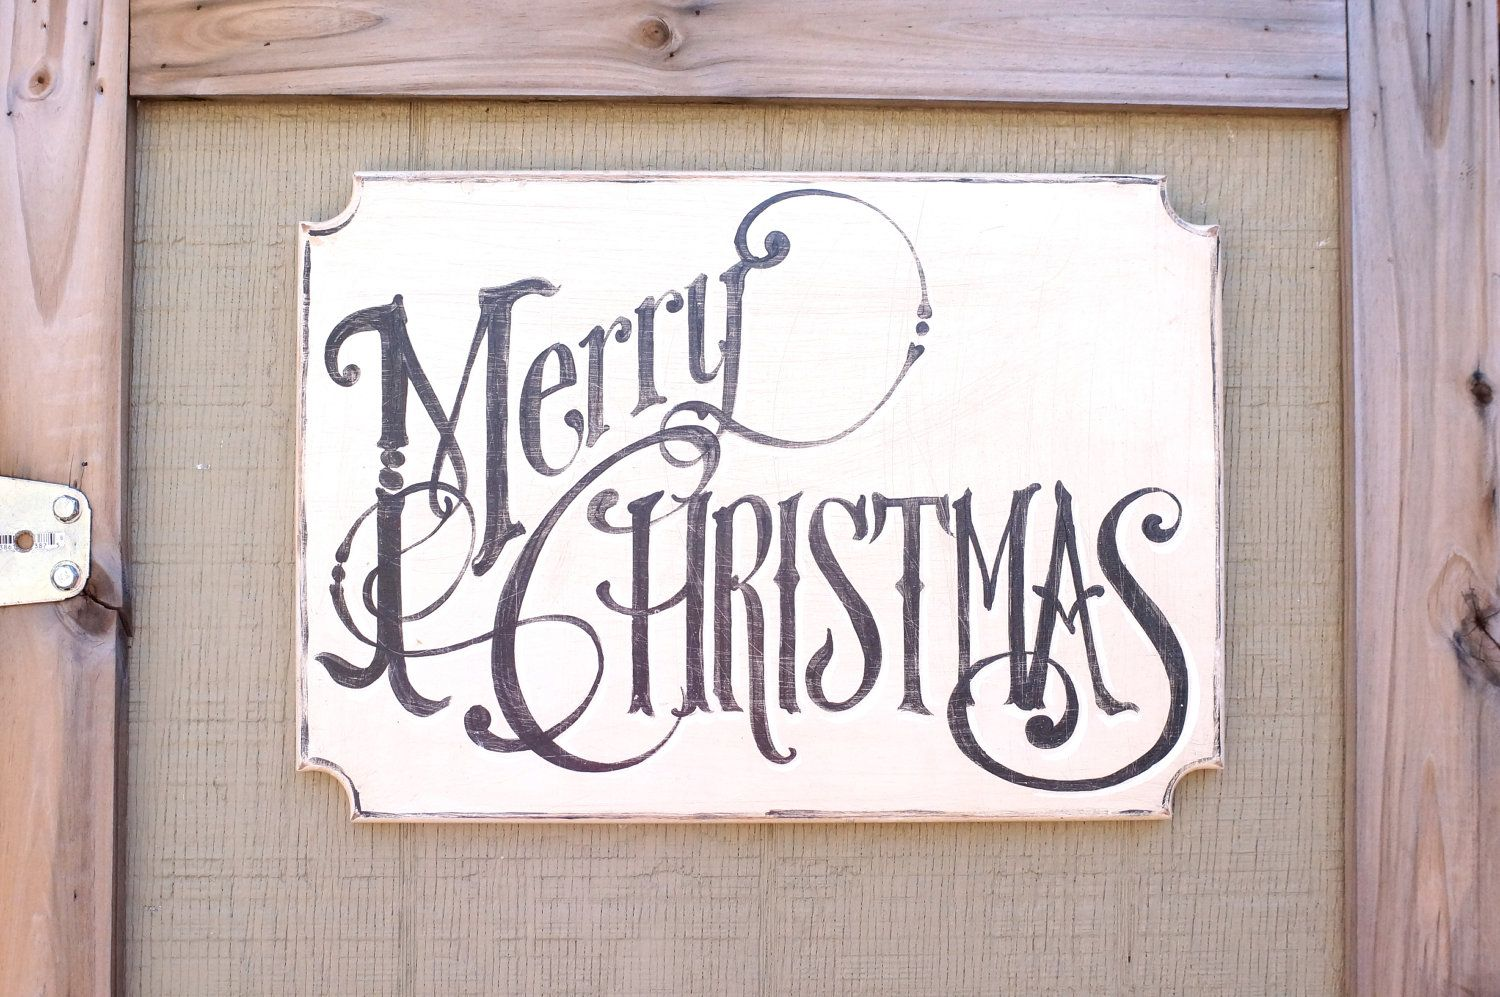 Merry christmas sign sinage pinterest merry christmas signs